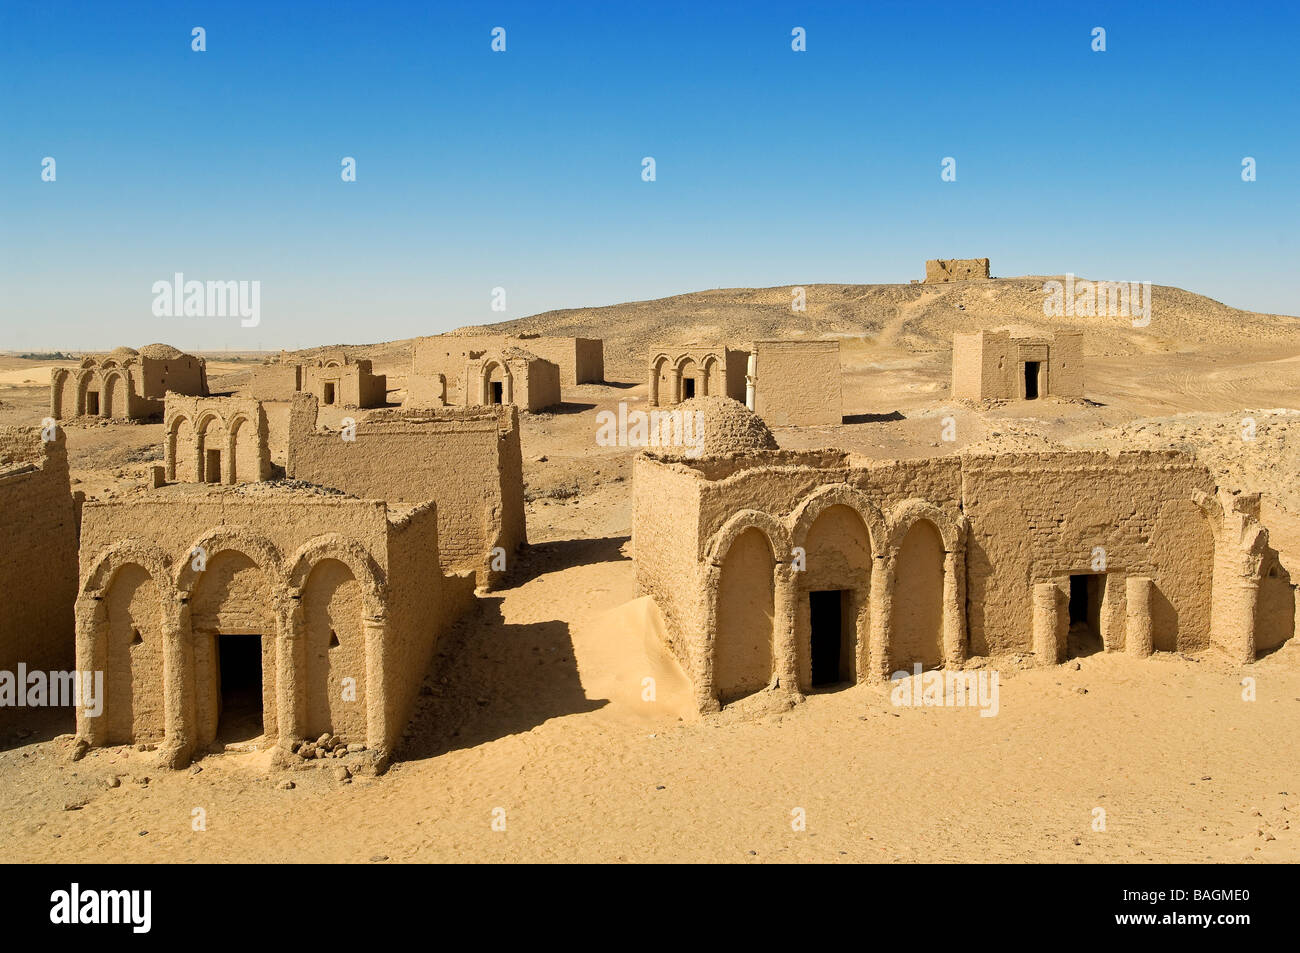 Egypt, Upper Egypt, Libyan Desert, Kharga Oasis, Bagawat Coptic Necropolis from the 2nd to the 7th century AD - Stock Image